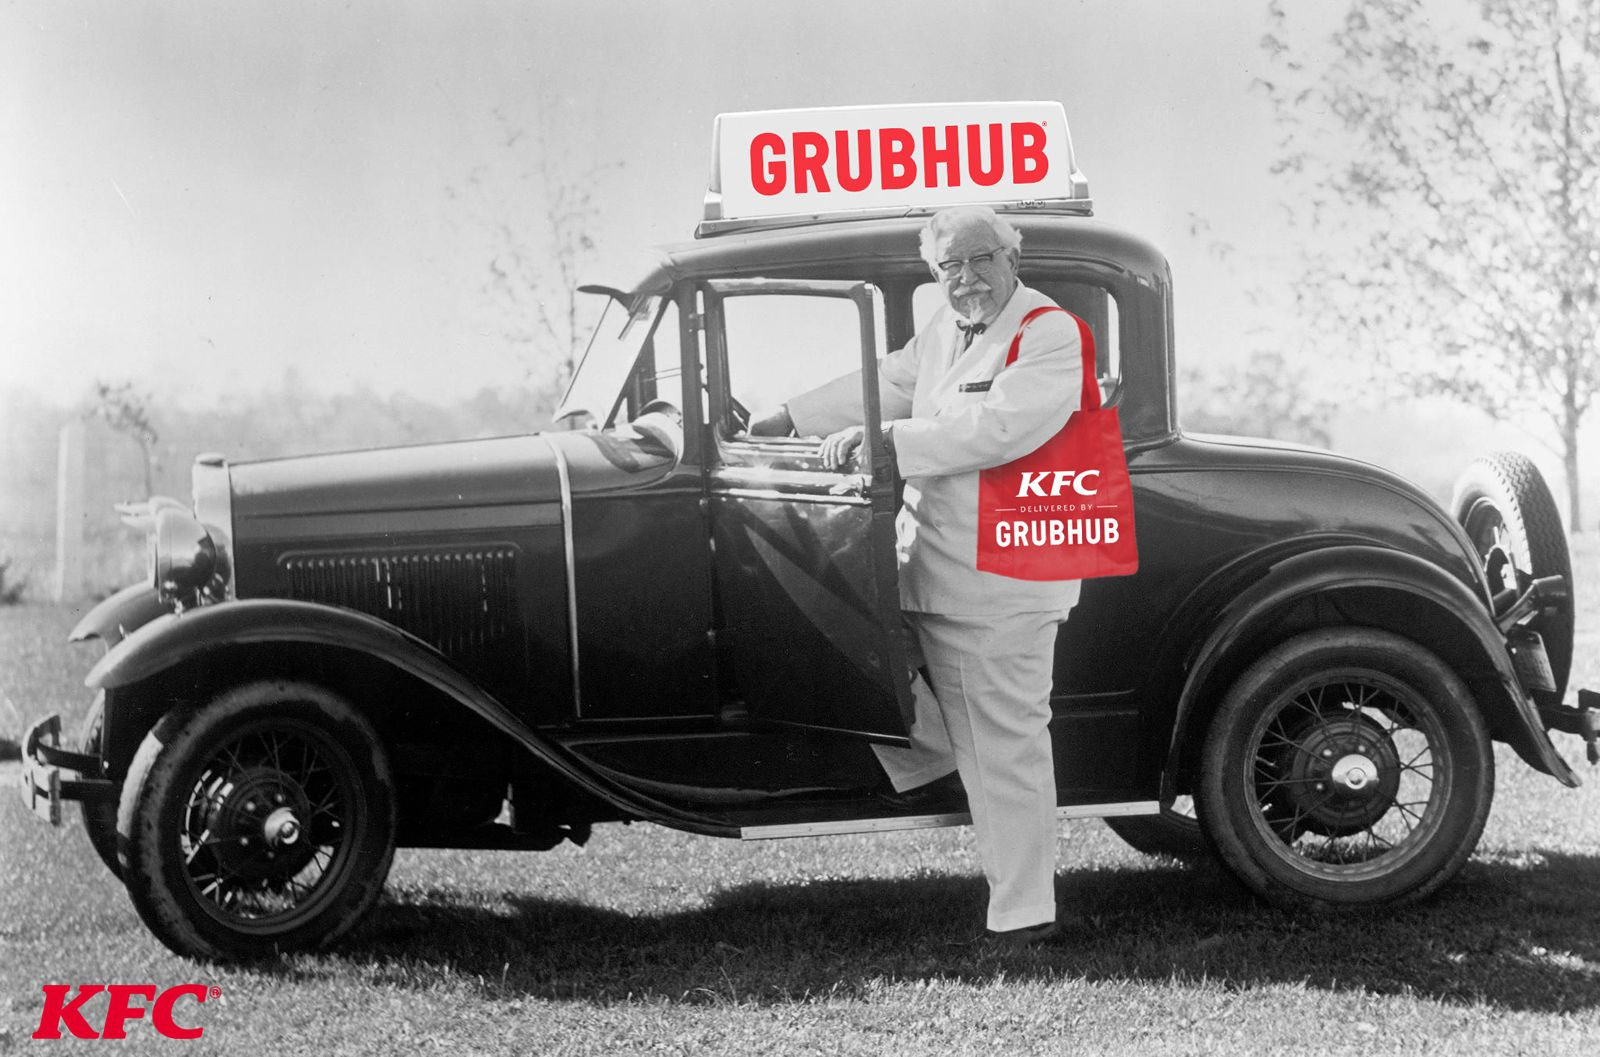 KFC Celebrates National Fried Chicken Day With Free Grubhub Delivery July 4-7